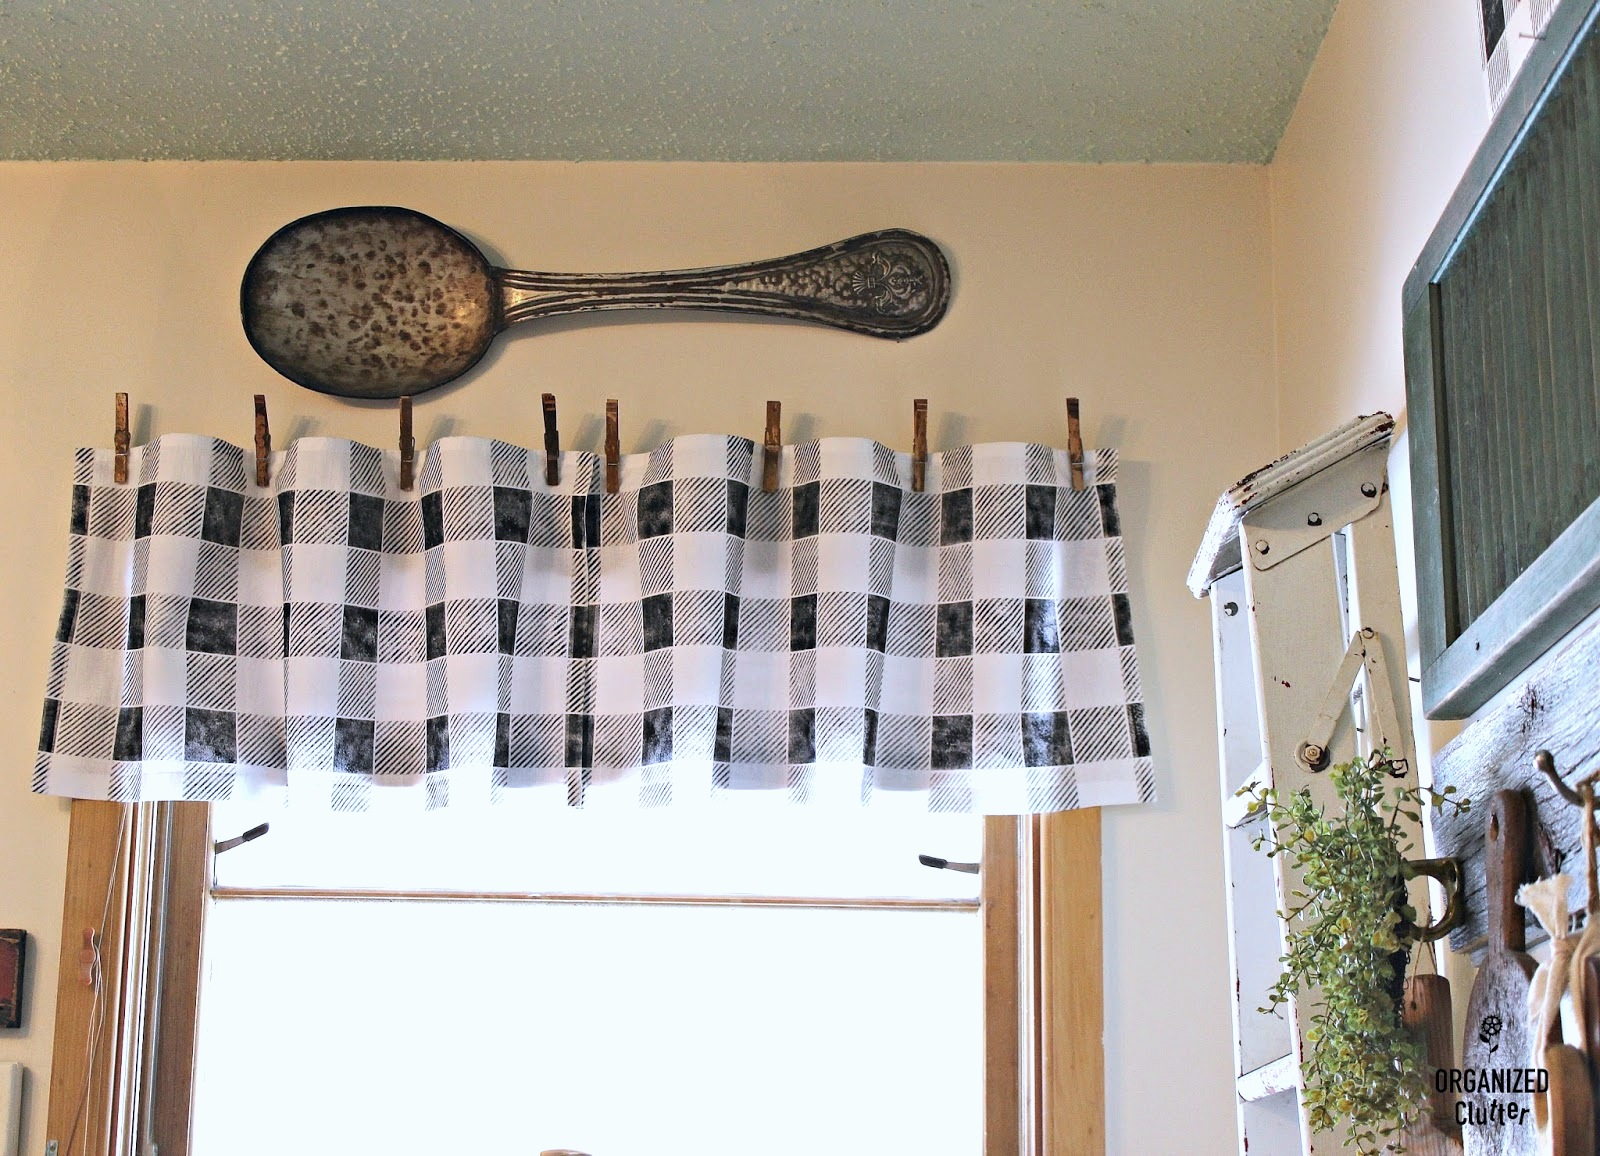 Buffalo checked no sew flour sack kitchen valance by Organized Clutter, featured on Funky Junk Interiors